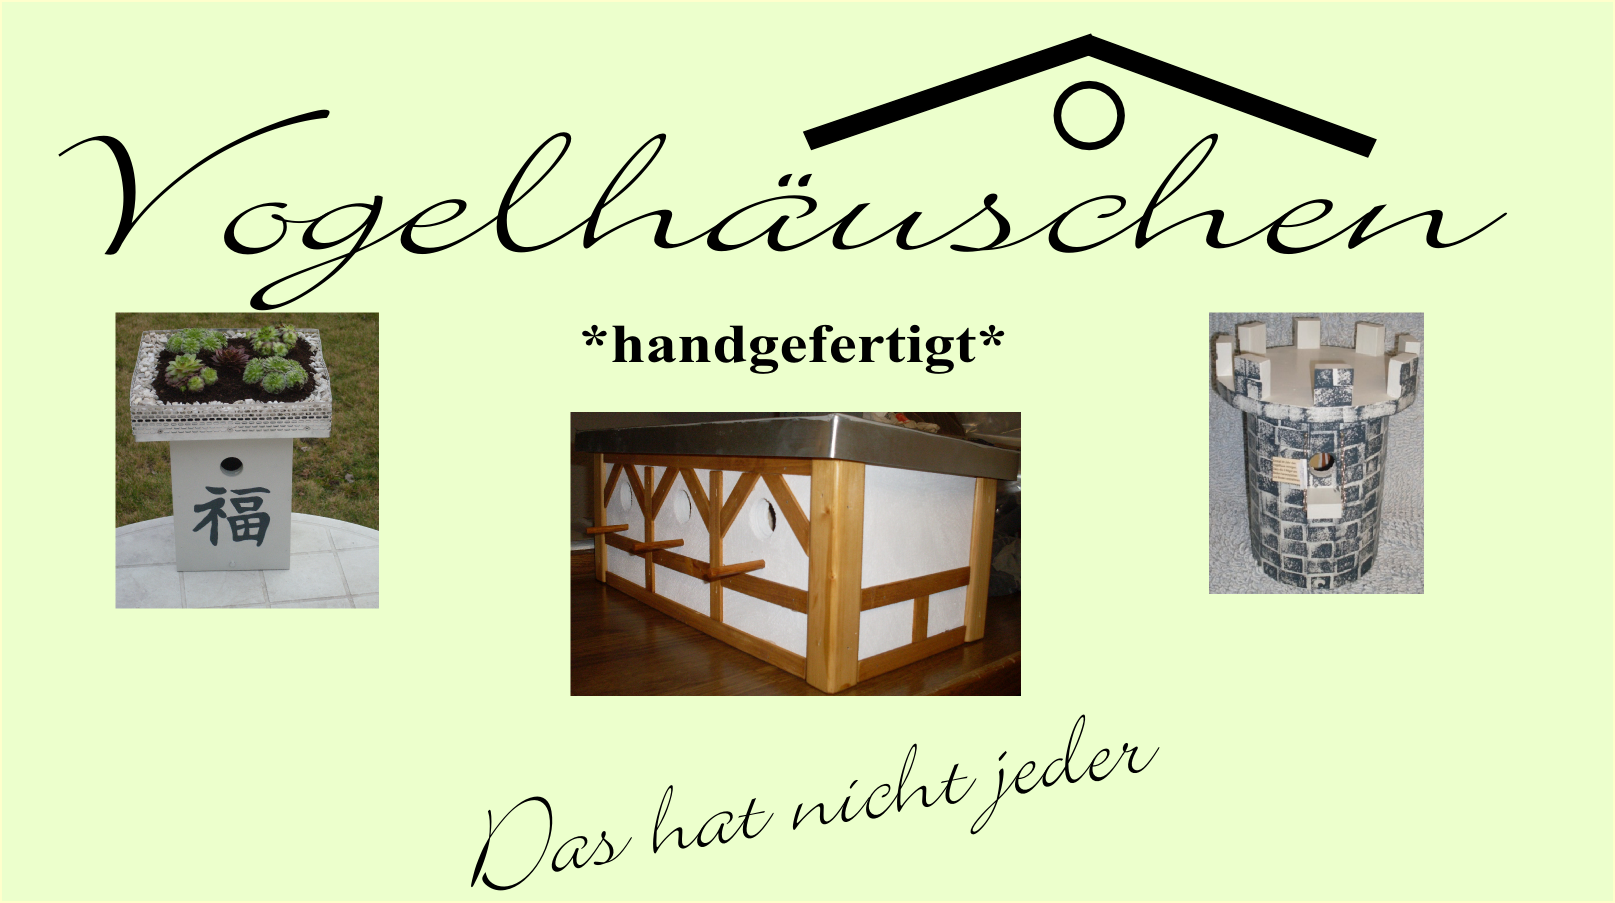 vogelh uschen handgefertigt die hat nicht jeder. Black Bedroom Furniture Sets. Home Design Ideas